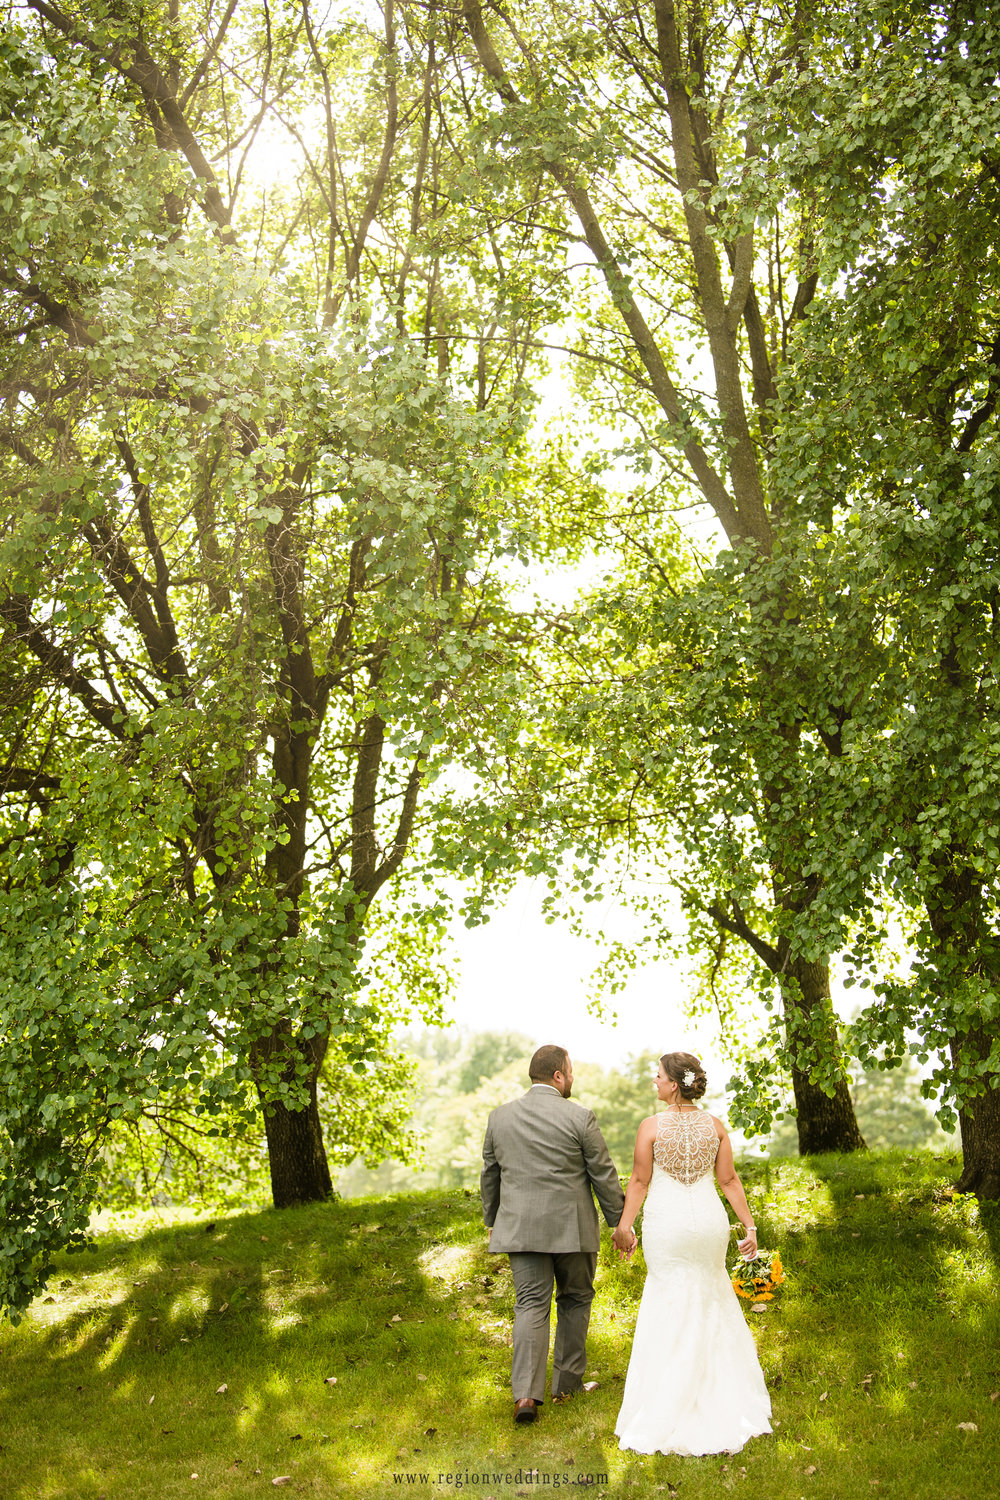 A romantic walk up a sun drenched hill for the bride and groom.